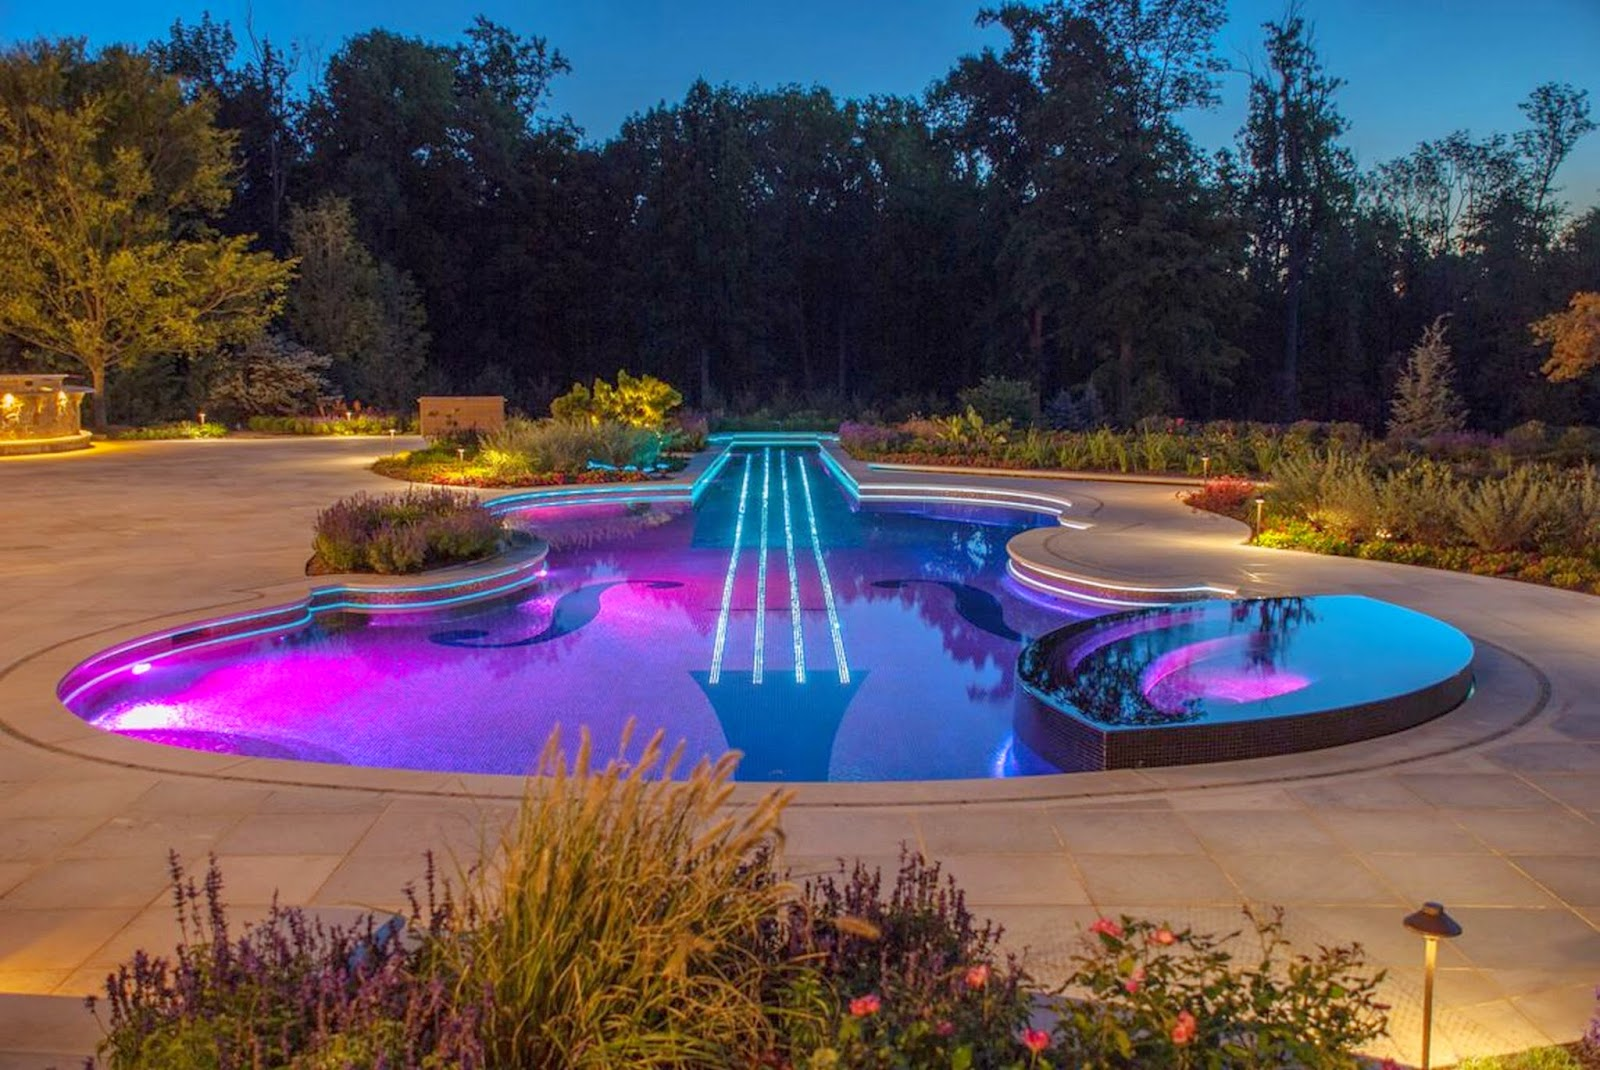 Attractive-Swimming-Pool-Lights-Underwater-for-Small-Swimming-Pool-Design-Ideas